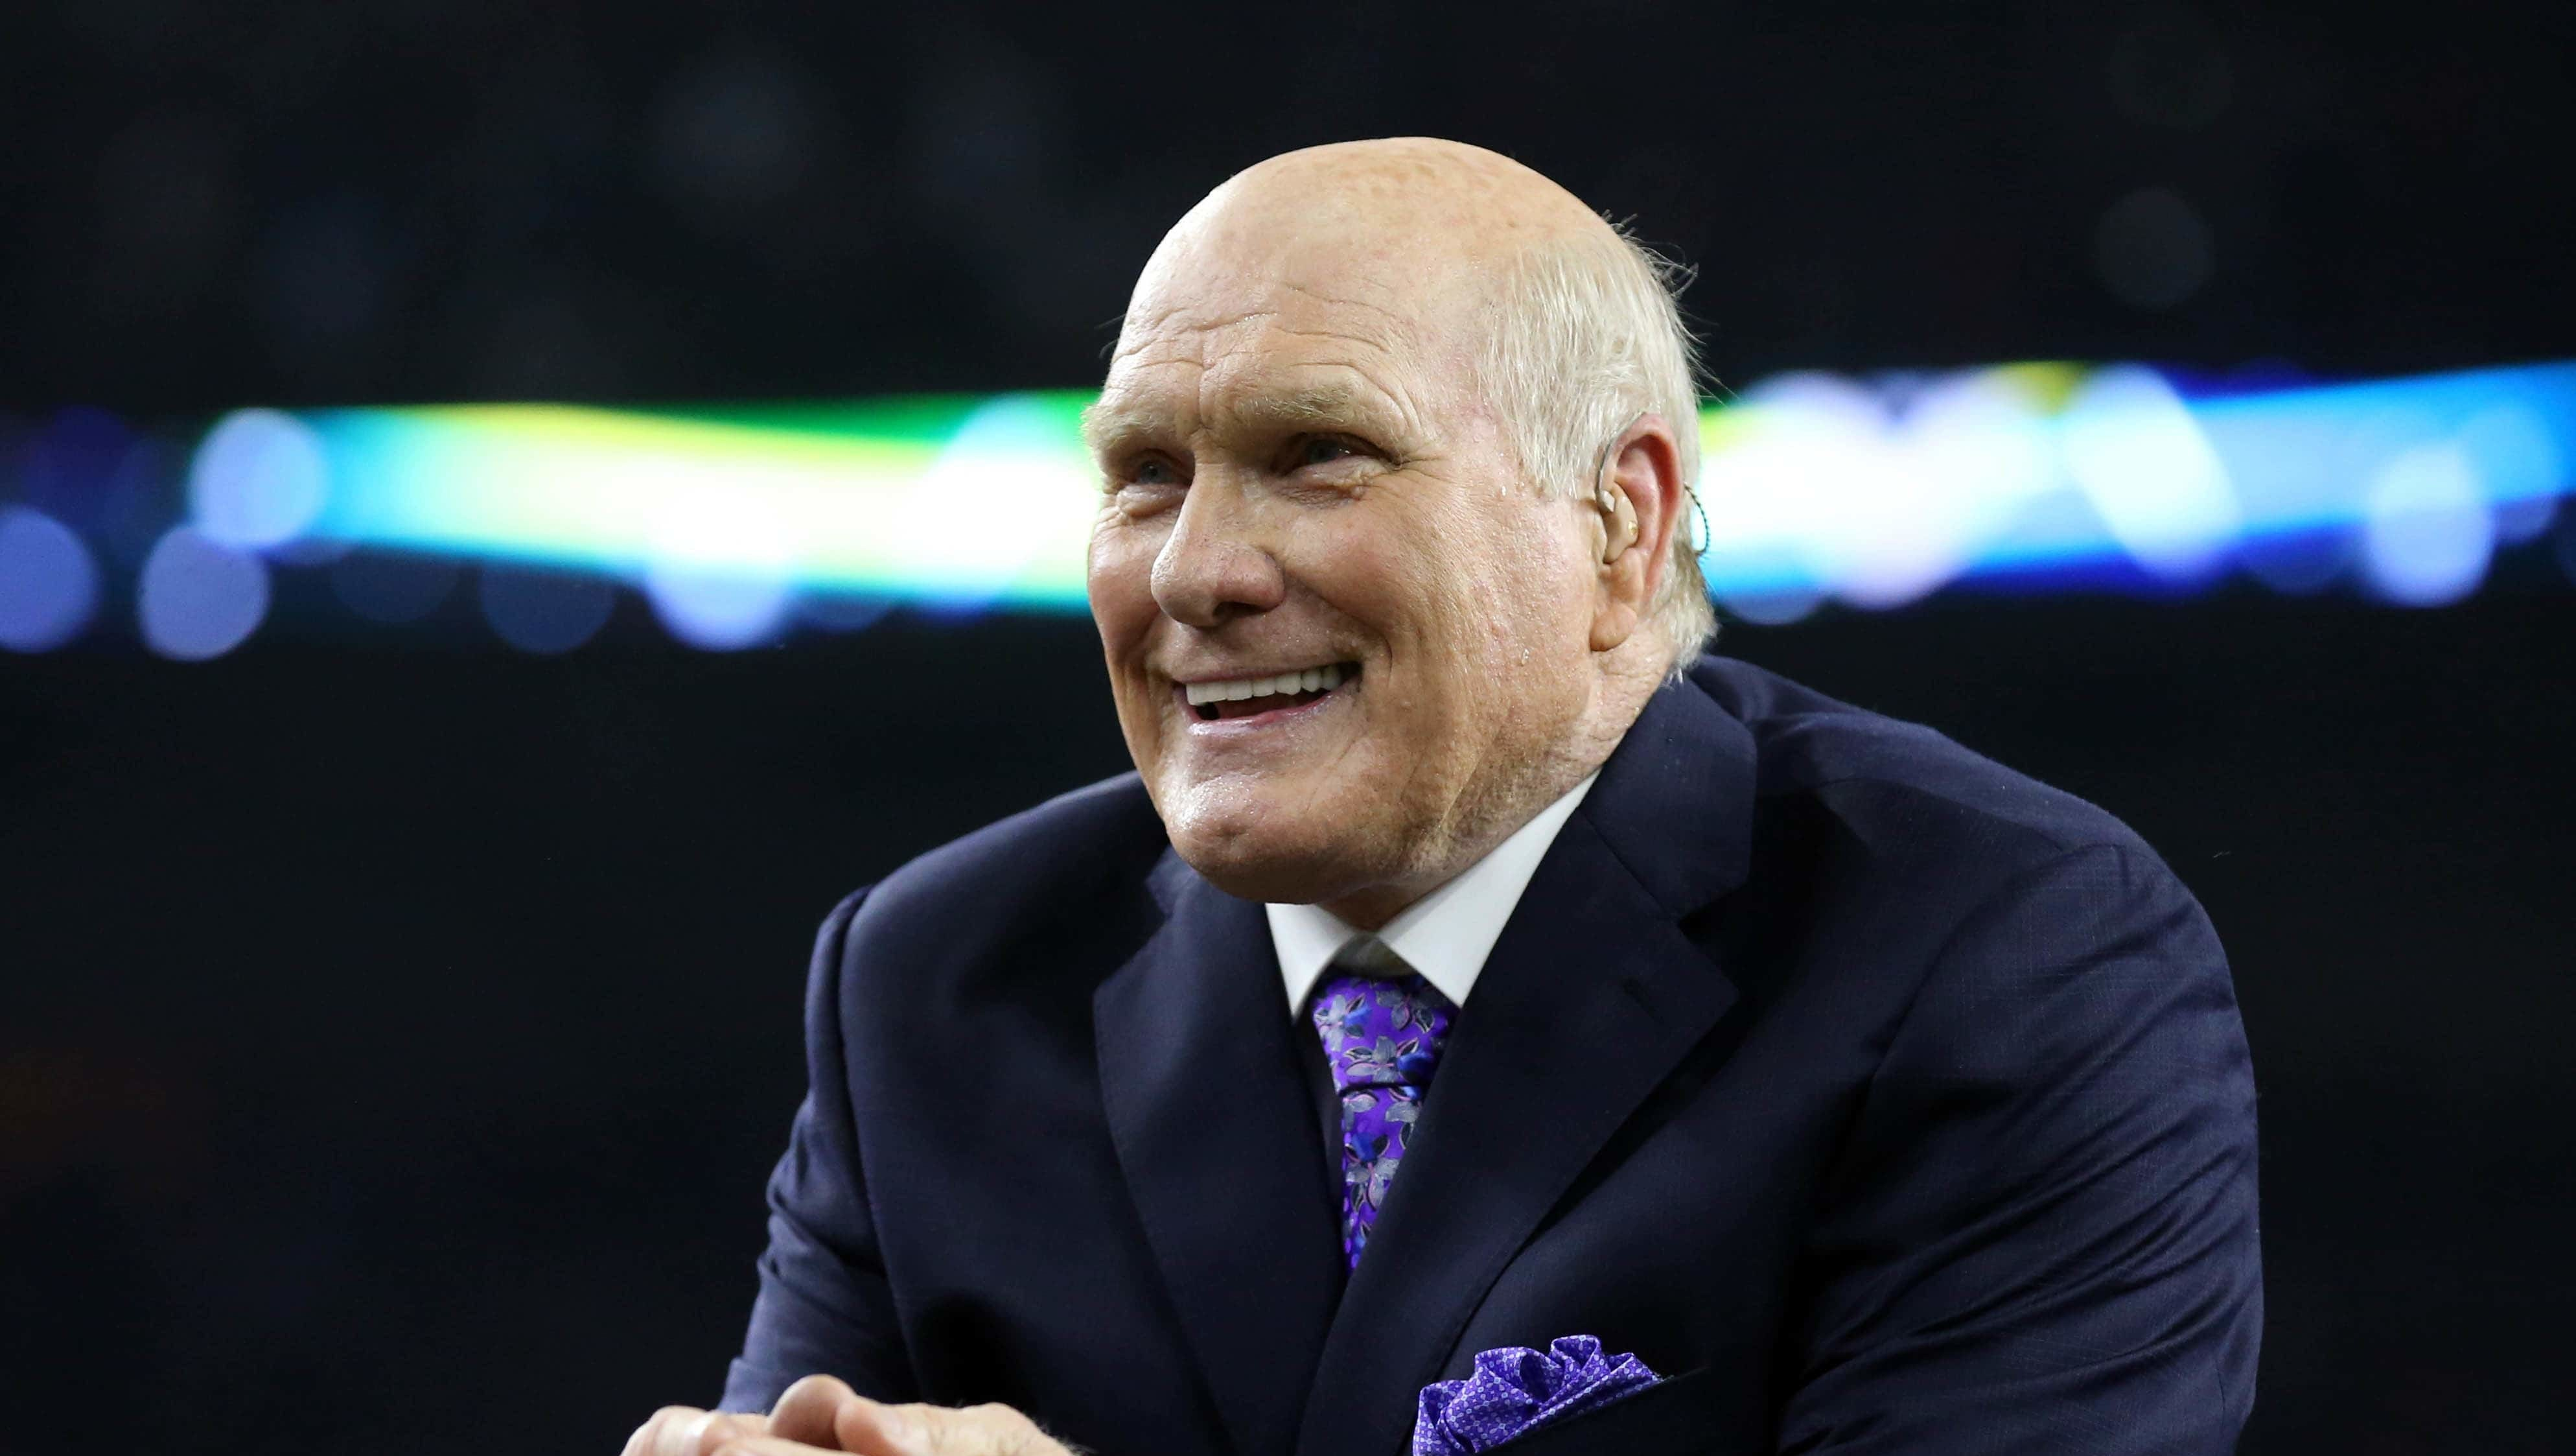 Terry Bradshaw to Ken Jeong: Sorry for offensive, 'insensitive remark'